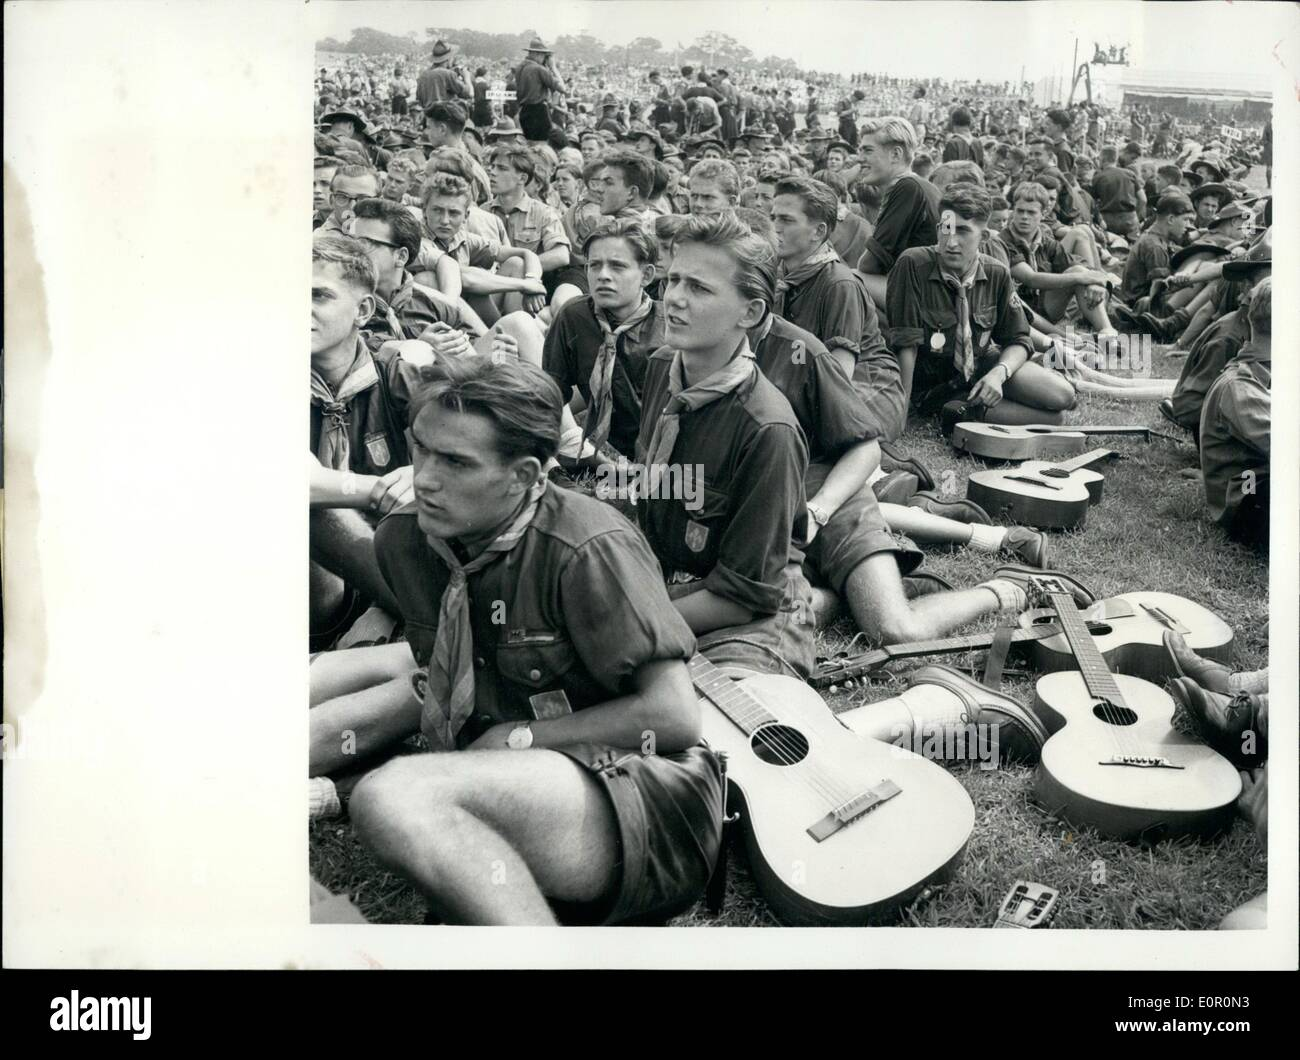 Aug. 08, 1957 - Duke Of Gloucester Opens Scouting Jamboree: The World Scout Jubilee Jamboree at Sutton Coldfield, England, was opened by the Duke of Gloucester, who is president of the Boy Scouts Association. After the Duke had made his speech of welcome he drove round the ranks of 35,000 Scouts from 82 countries and toured the camps in which they are living. Photo shows A group of German Scouts and Spanish guitars at Sutton Camp on opening day. - Stock Image